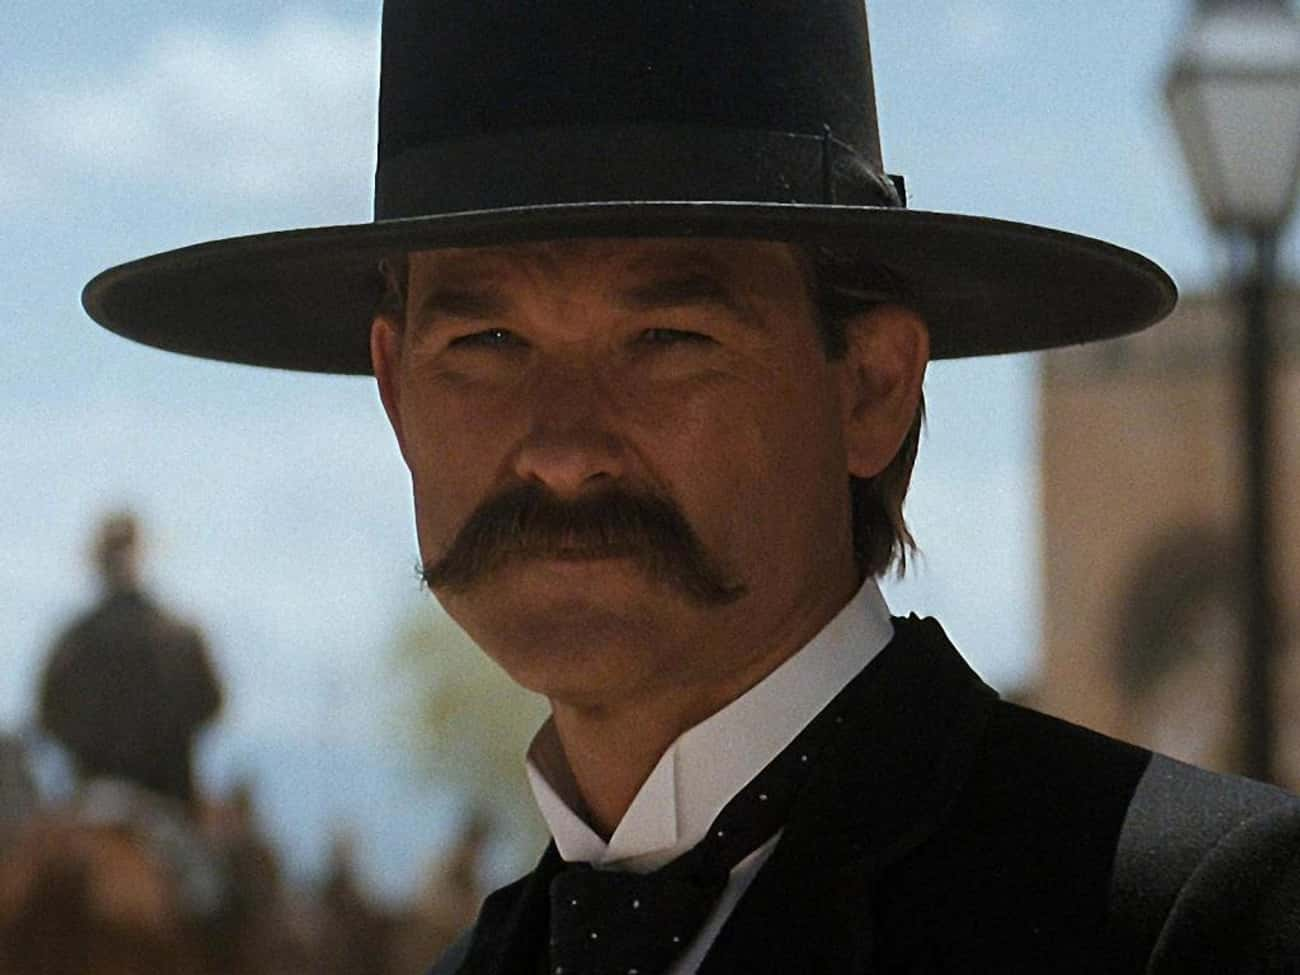 Wyatt Earp is listed (or ranked) 2 on the list The Best Mustaches in Film